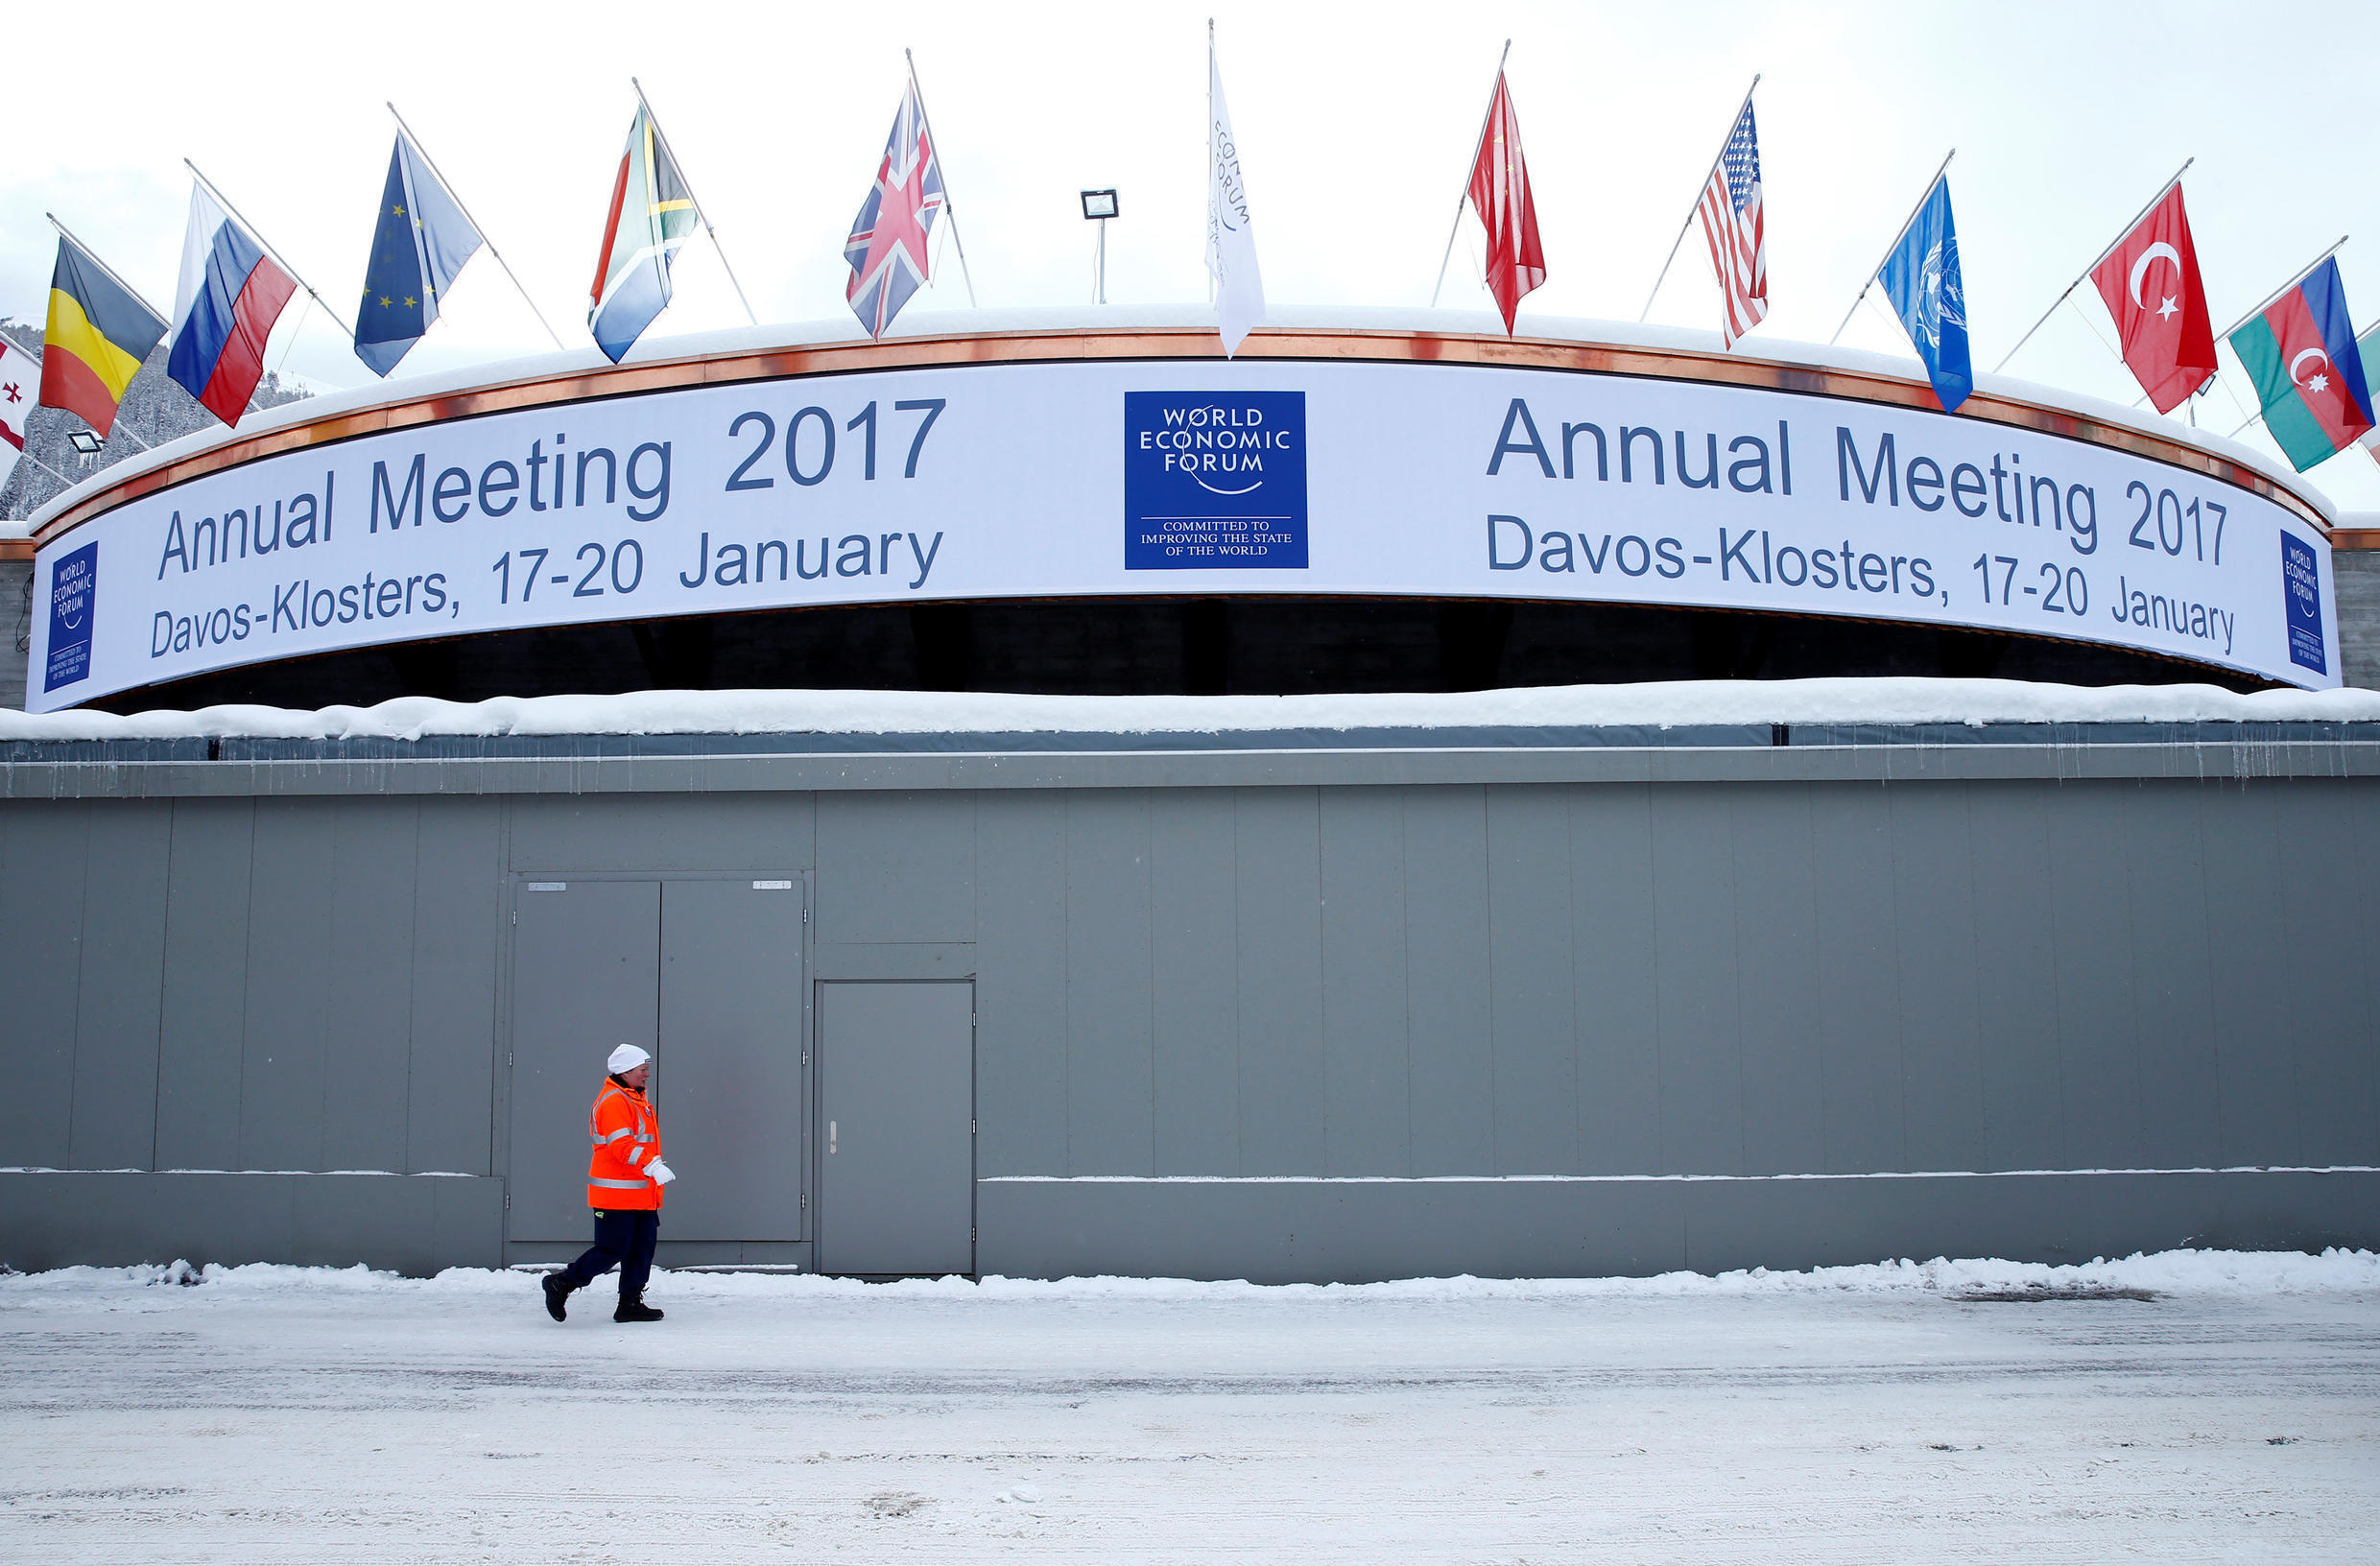 The 47th edition of the World Economic Forum summit of more than 3,000 political and economic leaders takes place in Davos, Switzerland from 17 to 20 January.